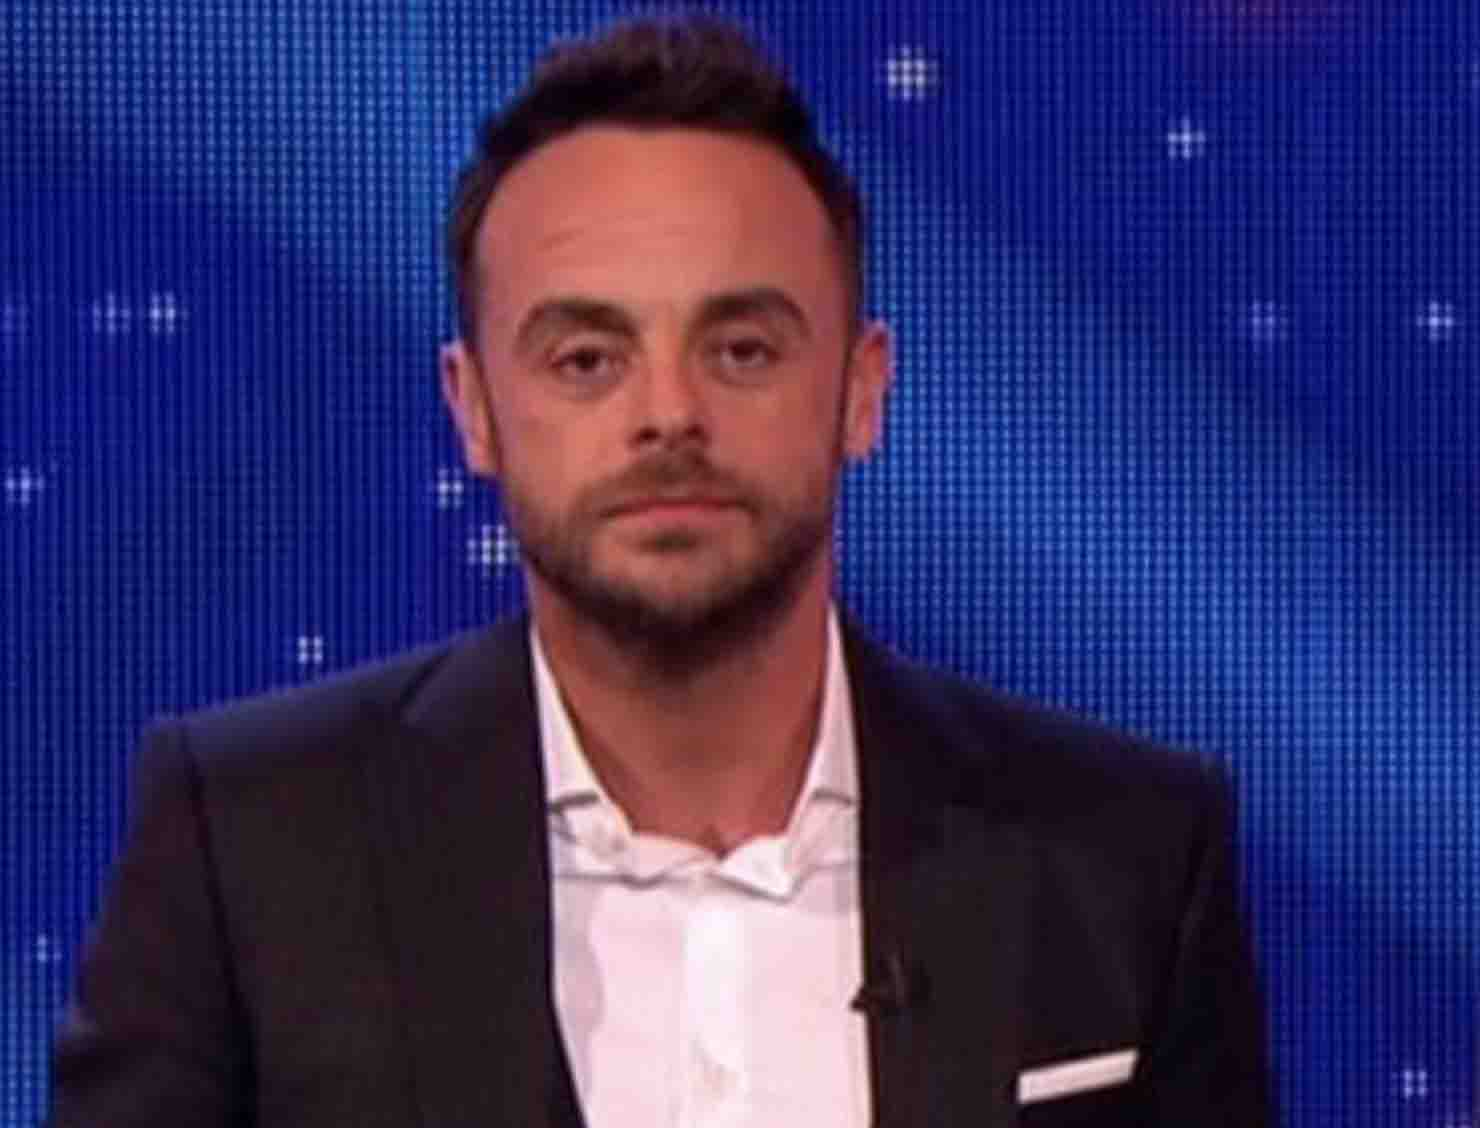 Ant McPartlin held over drink-driving after collision